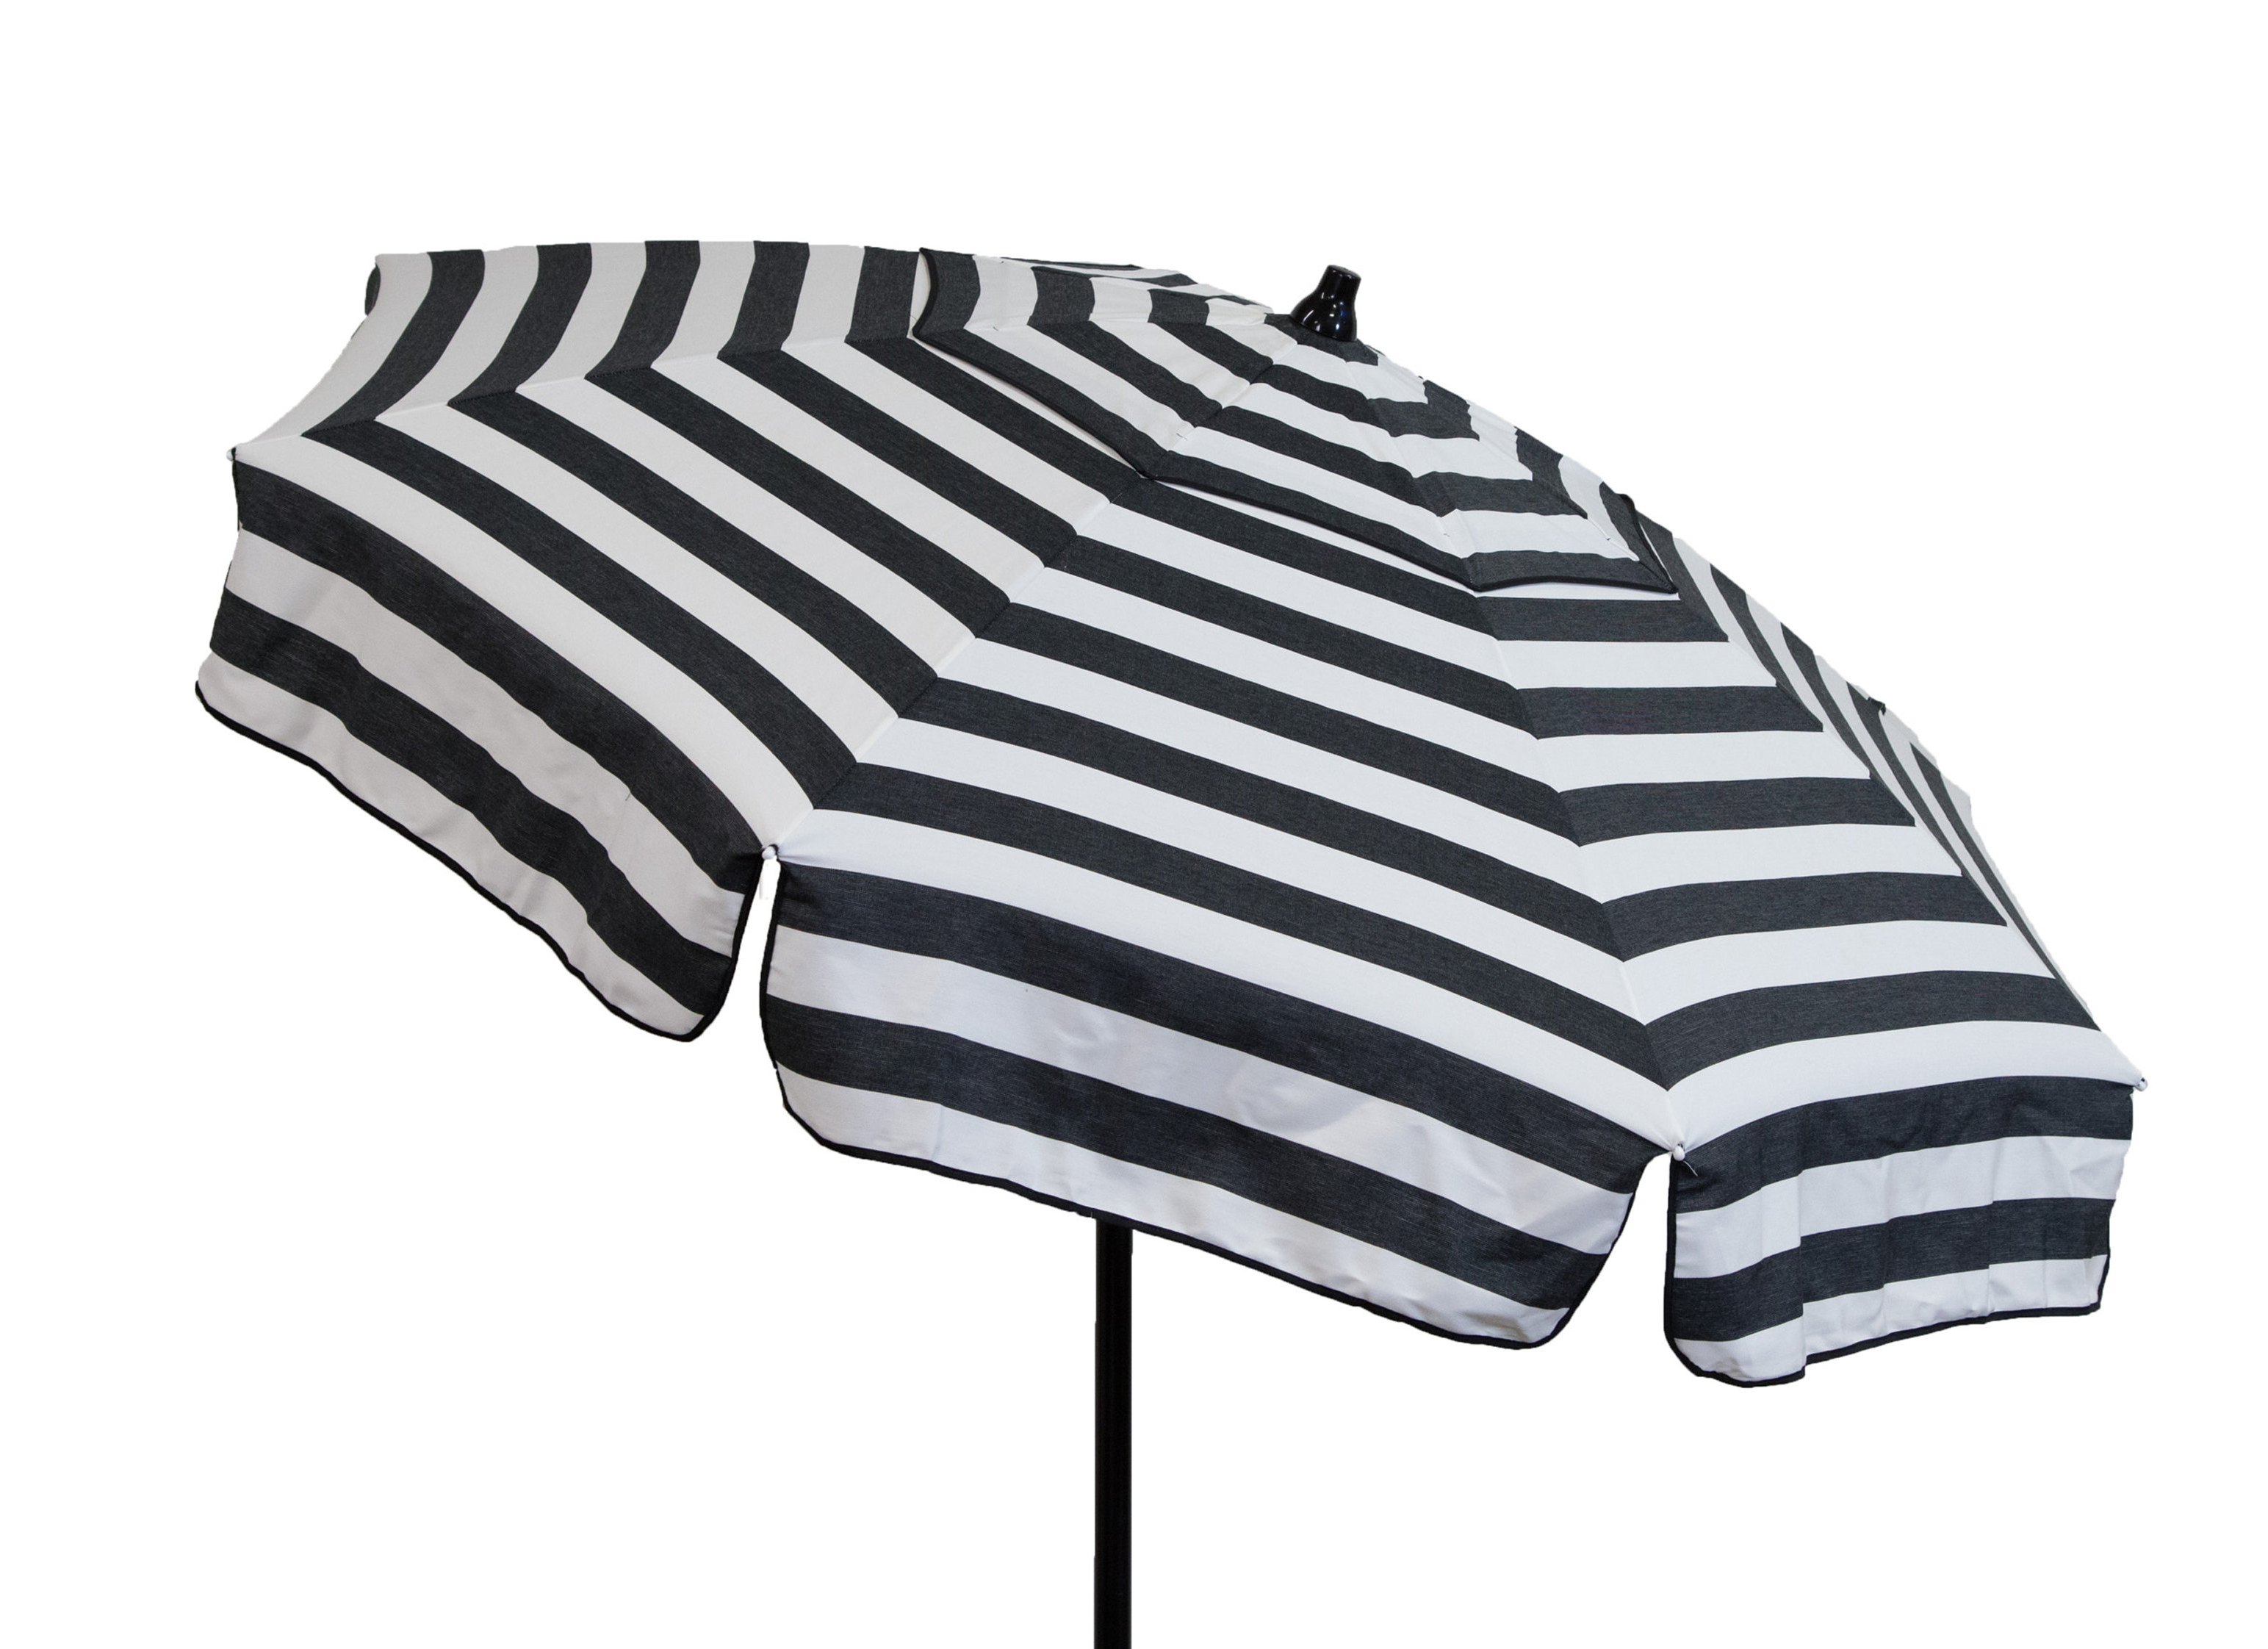 Most Current Italian 6' Drape Umbrella Inside Italian Drape Umbrellas (View 7 of 20)